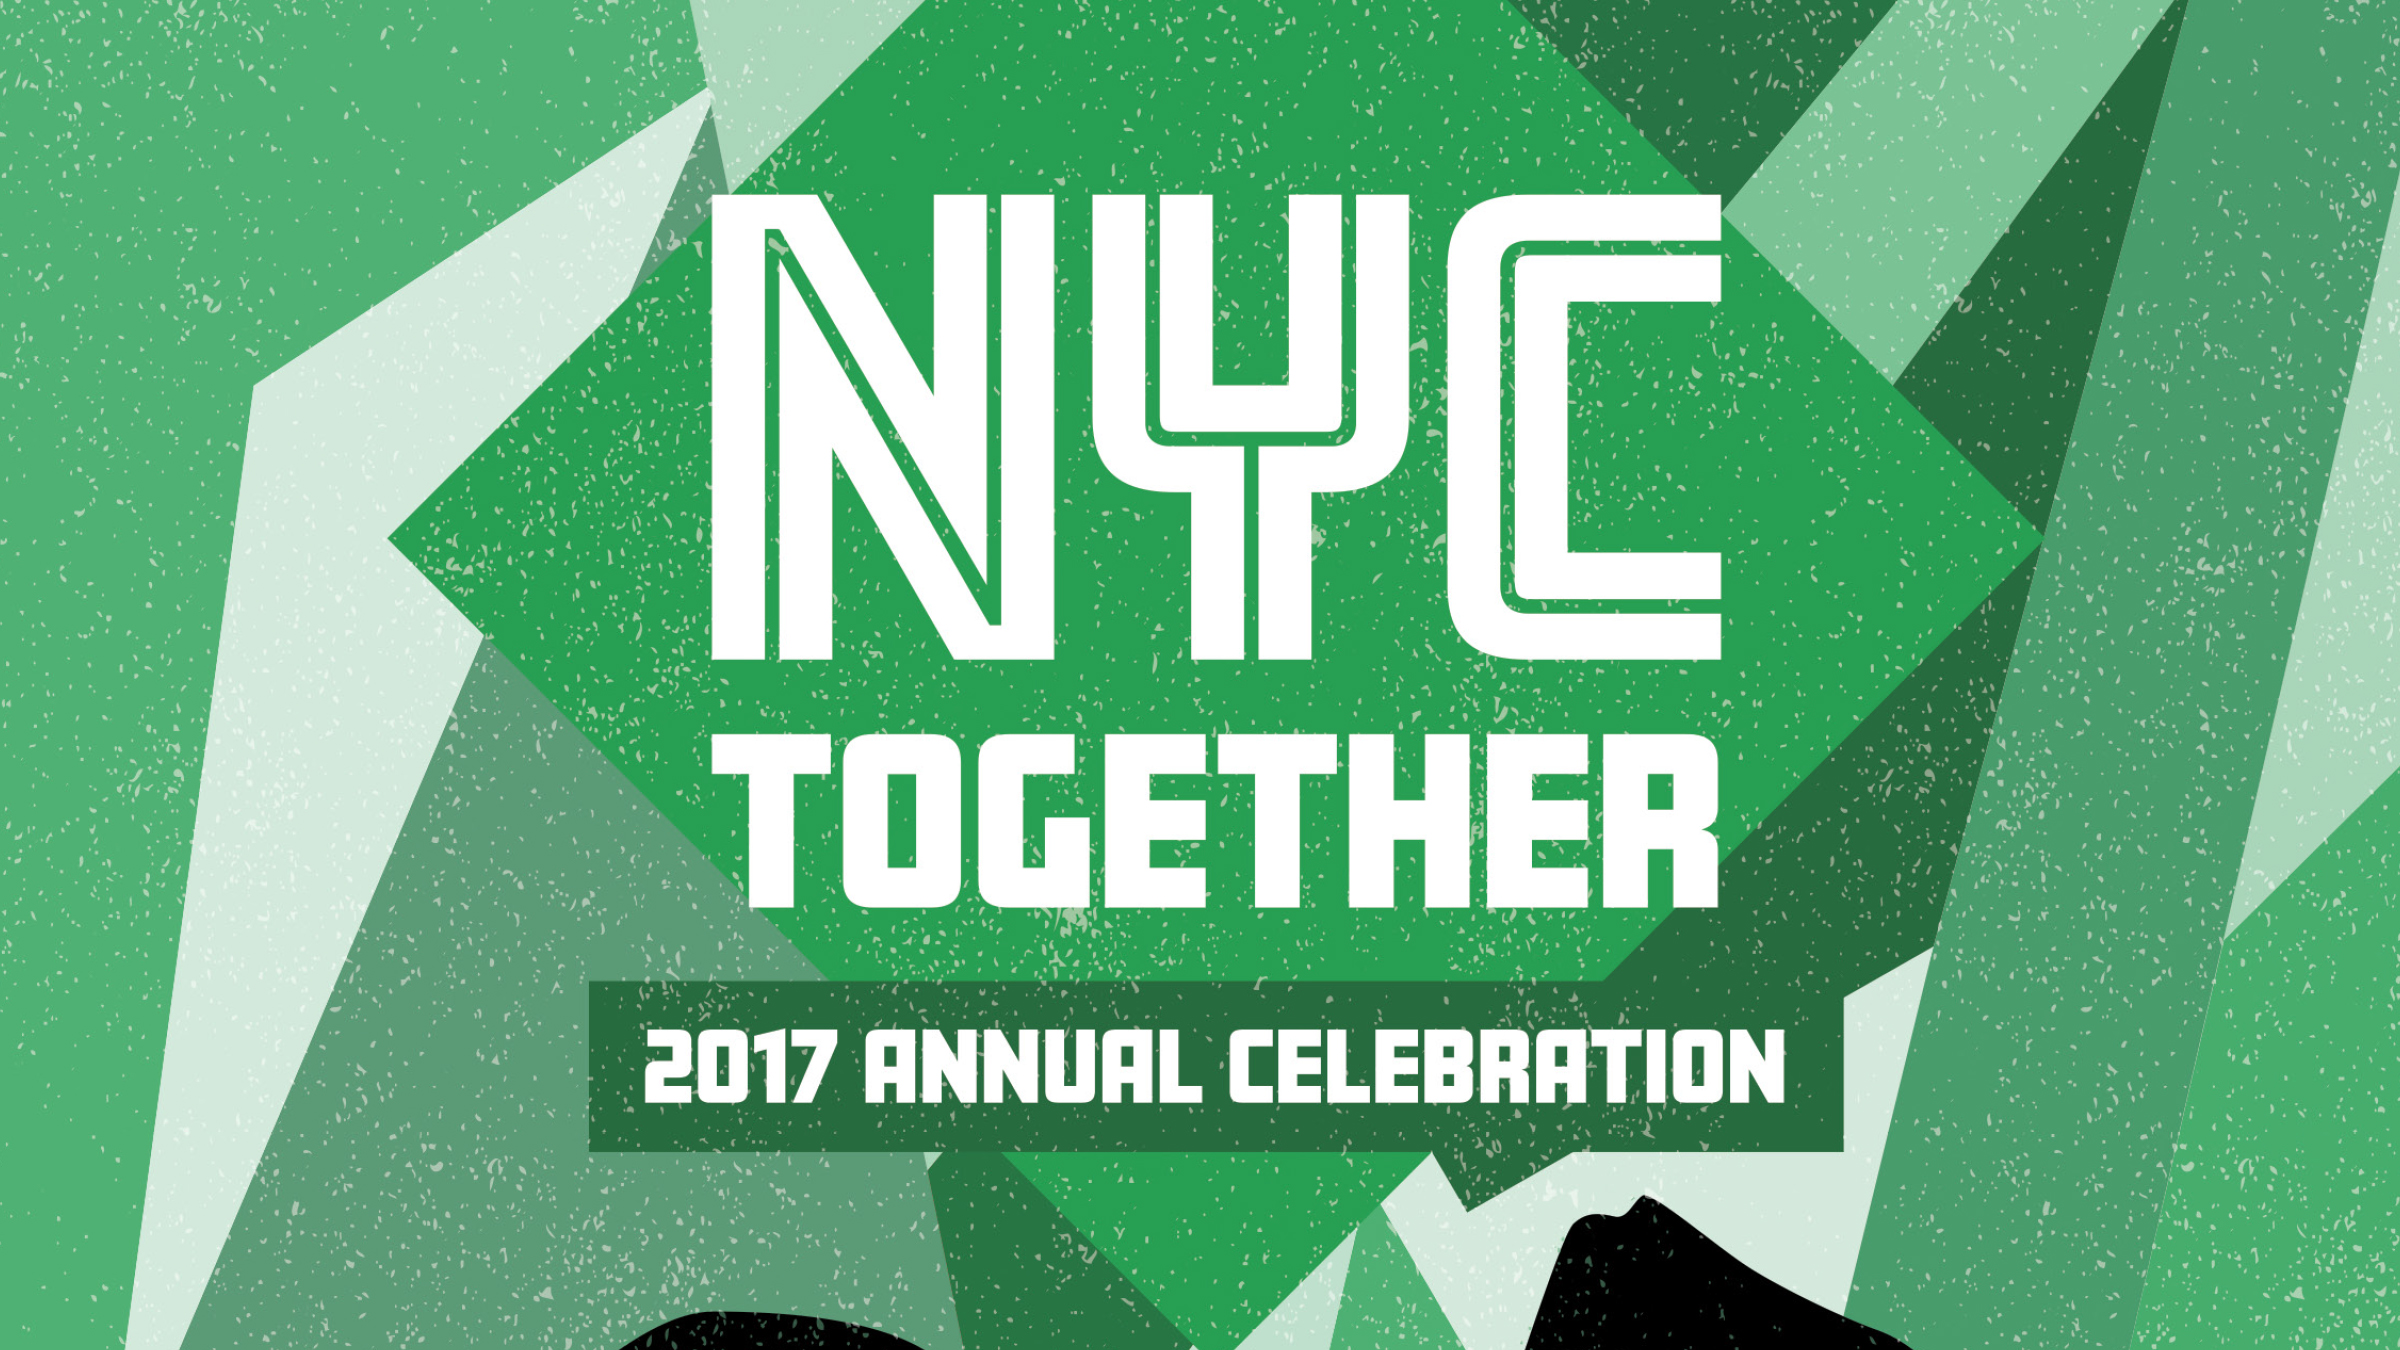 NYC Together Annual Fundraiser Program - Created and designed the annual theme for the annual fundraiser for NYC Together, a nonprofit located in New York City. This presentation is in print ready format.